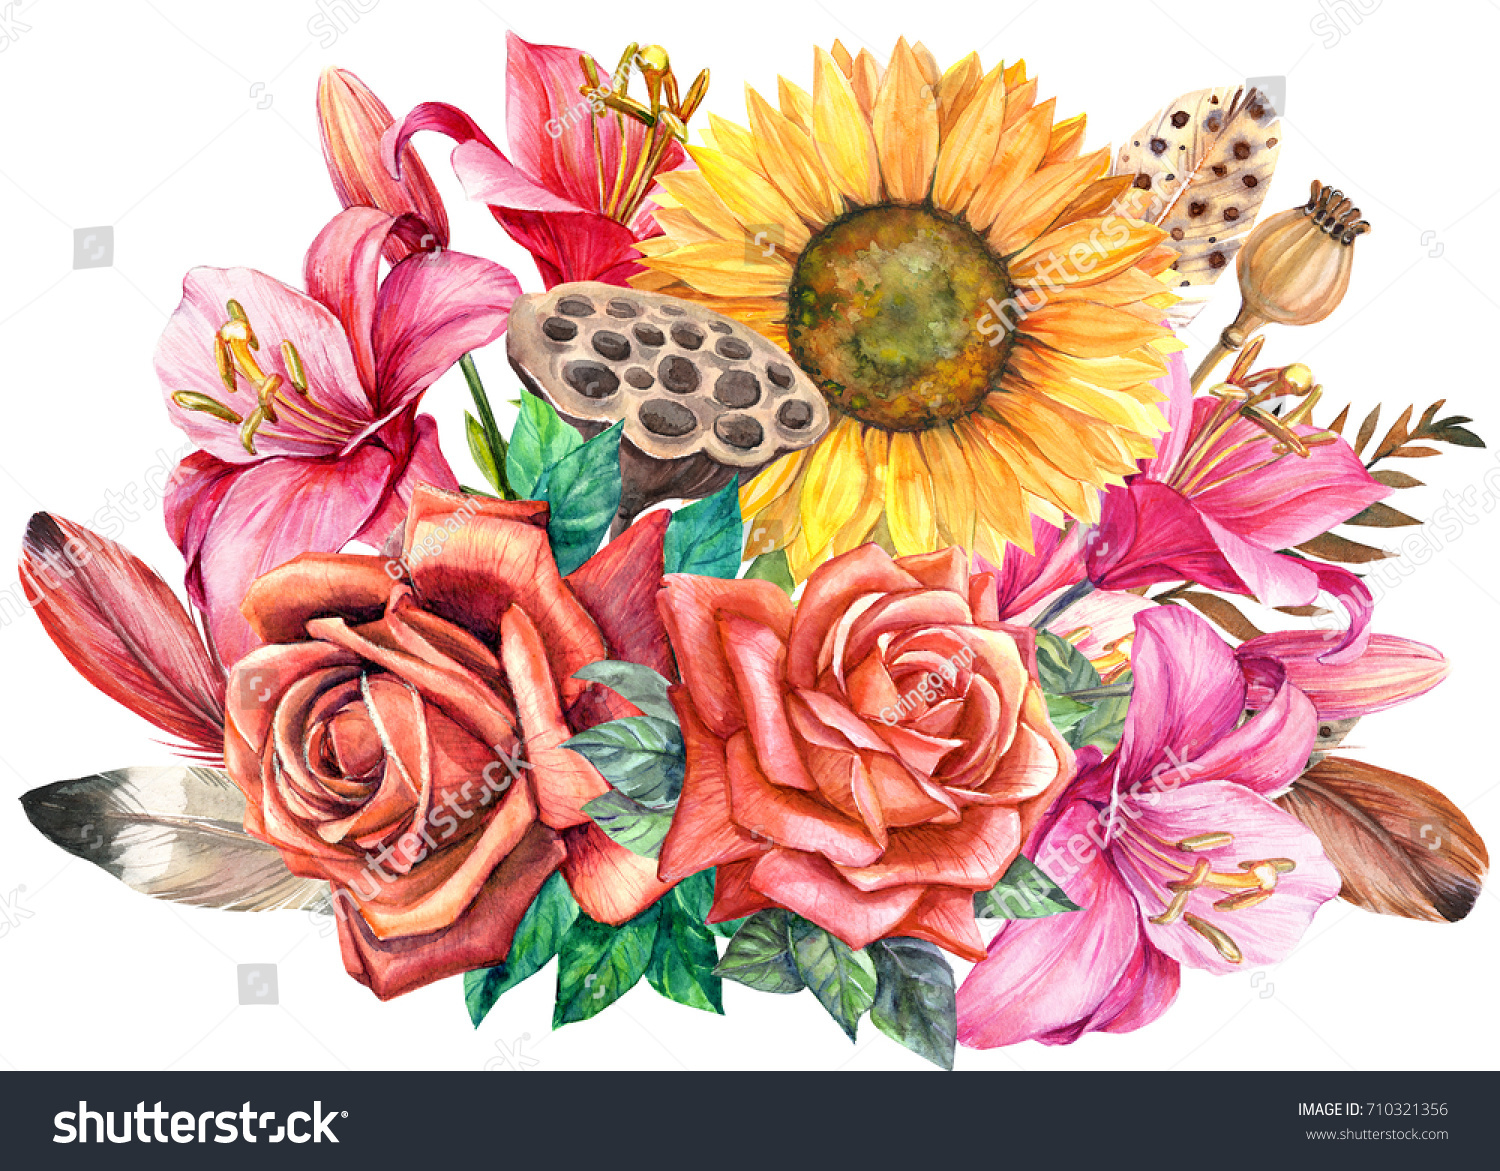 Bouquet Flowers Lily Roses Sunflower Lotus Stock Illustration